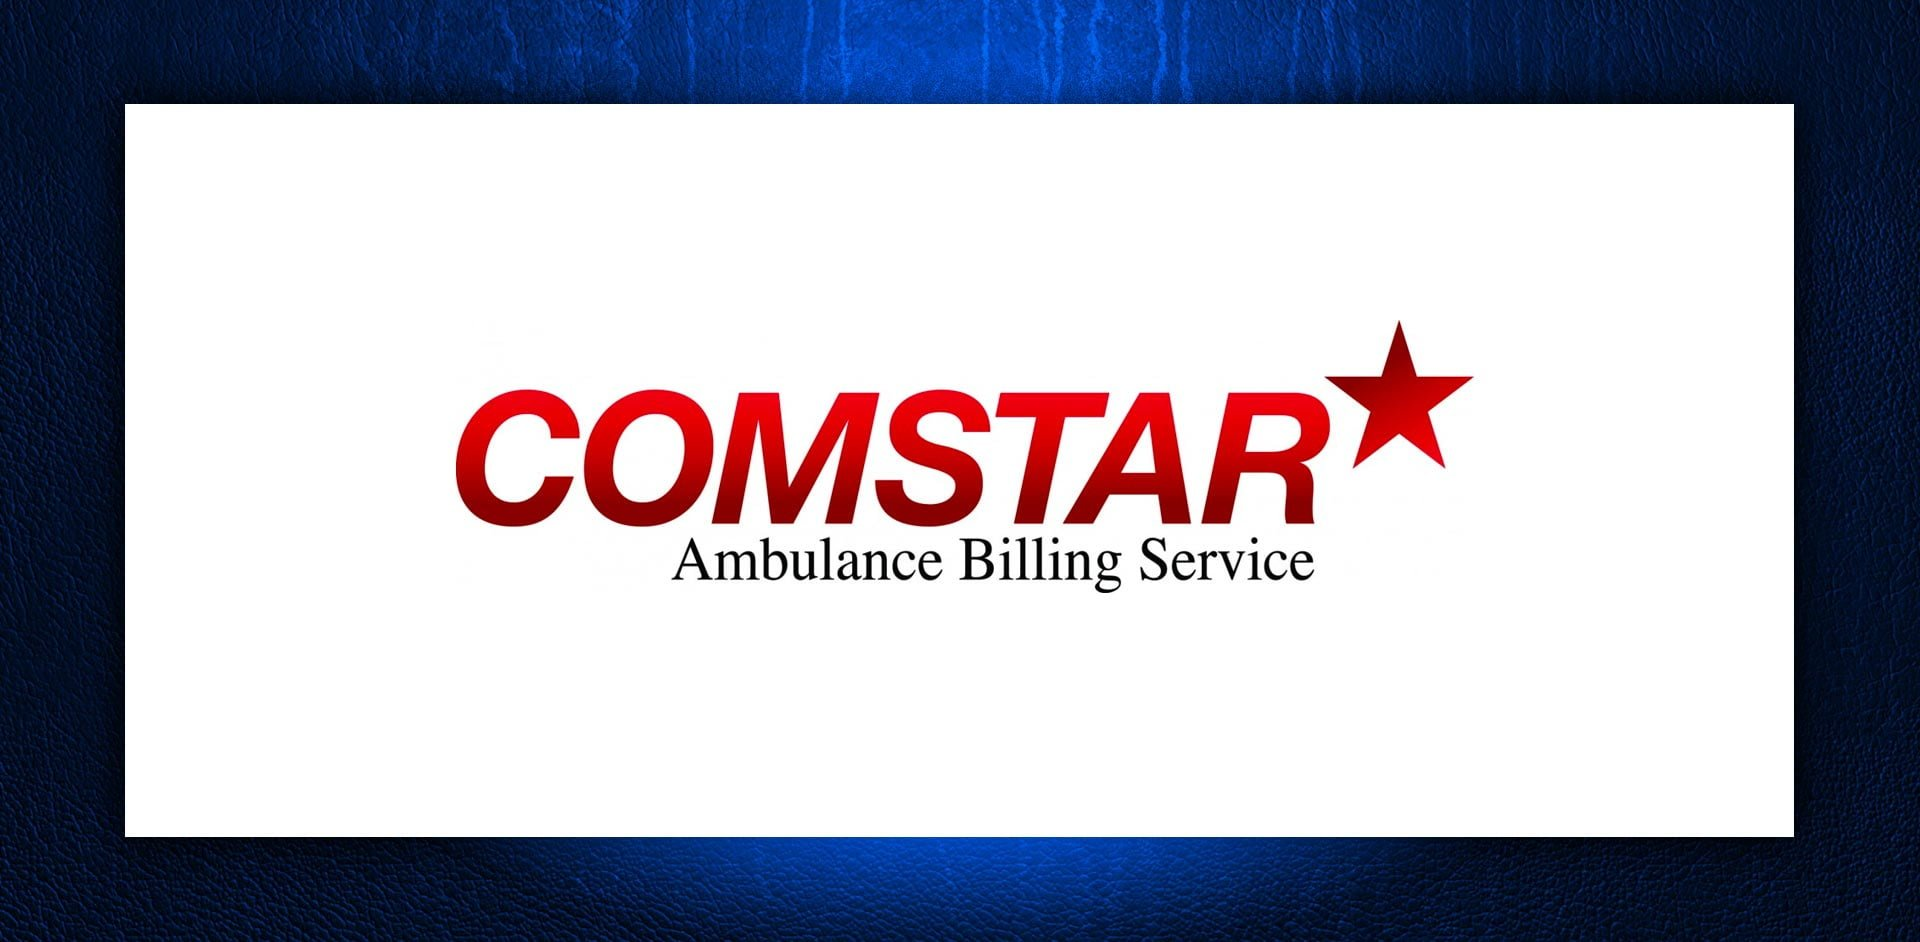 Comstar Ambulance Billing